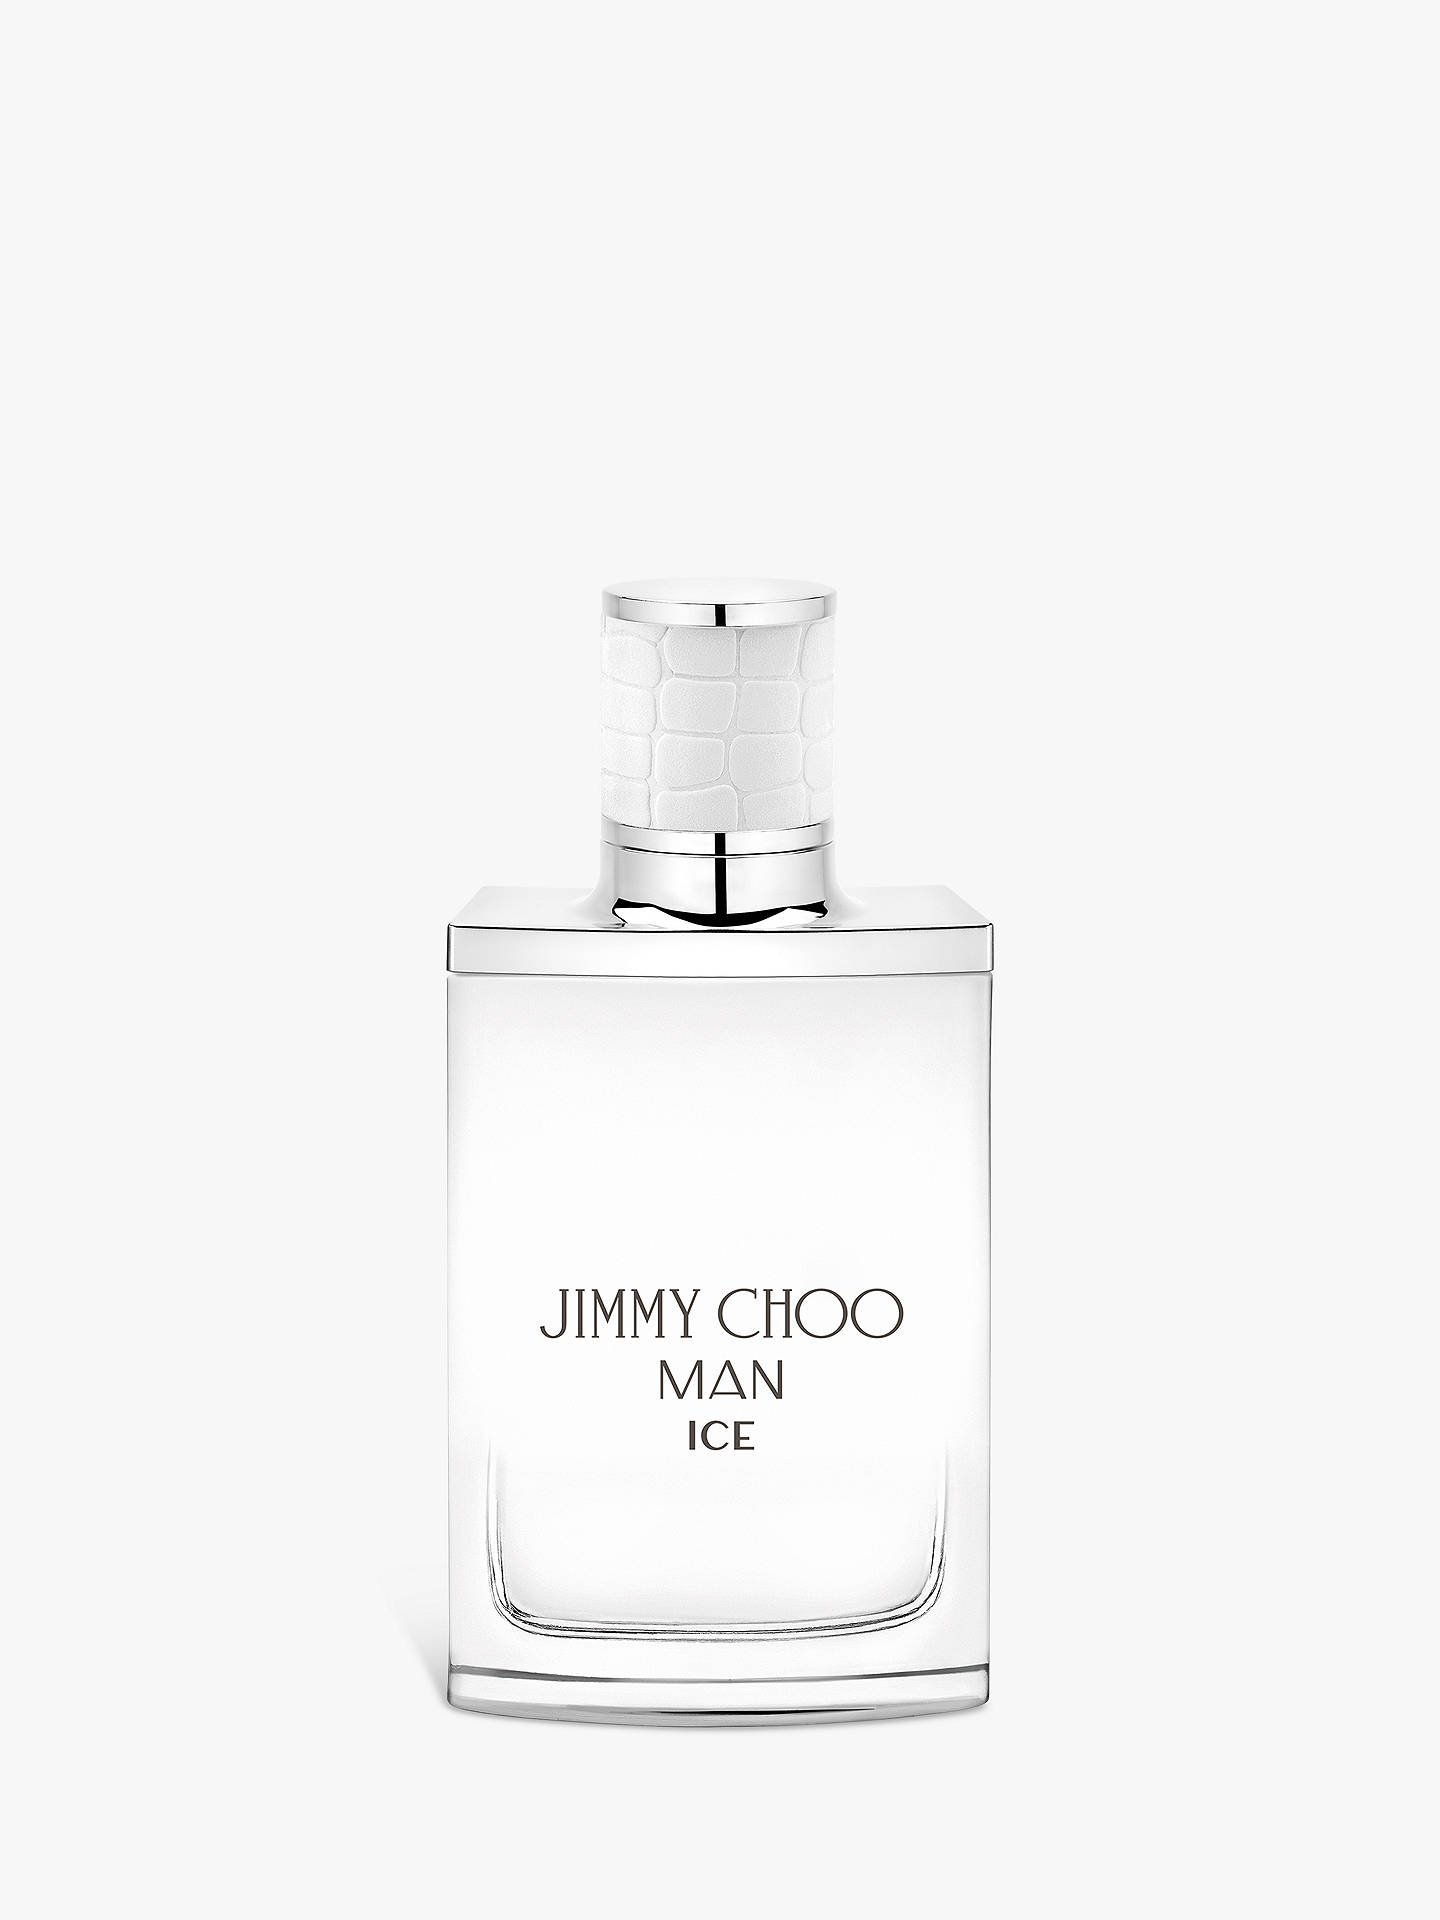 33a7fccd203f Jimmy Choo Man Ice Eau de Toilette at John Lewis   Partners